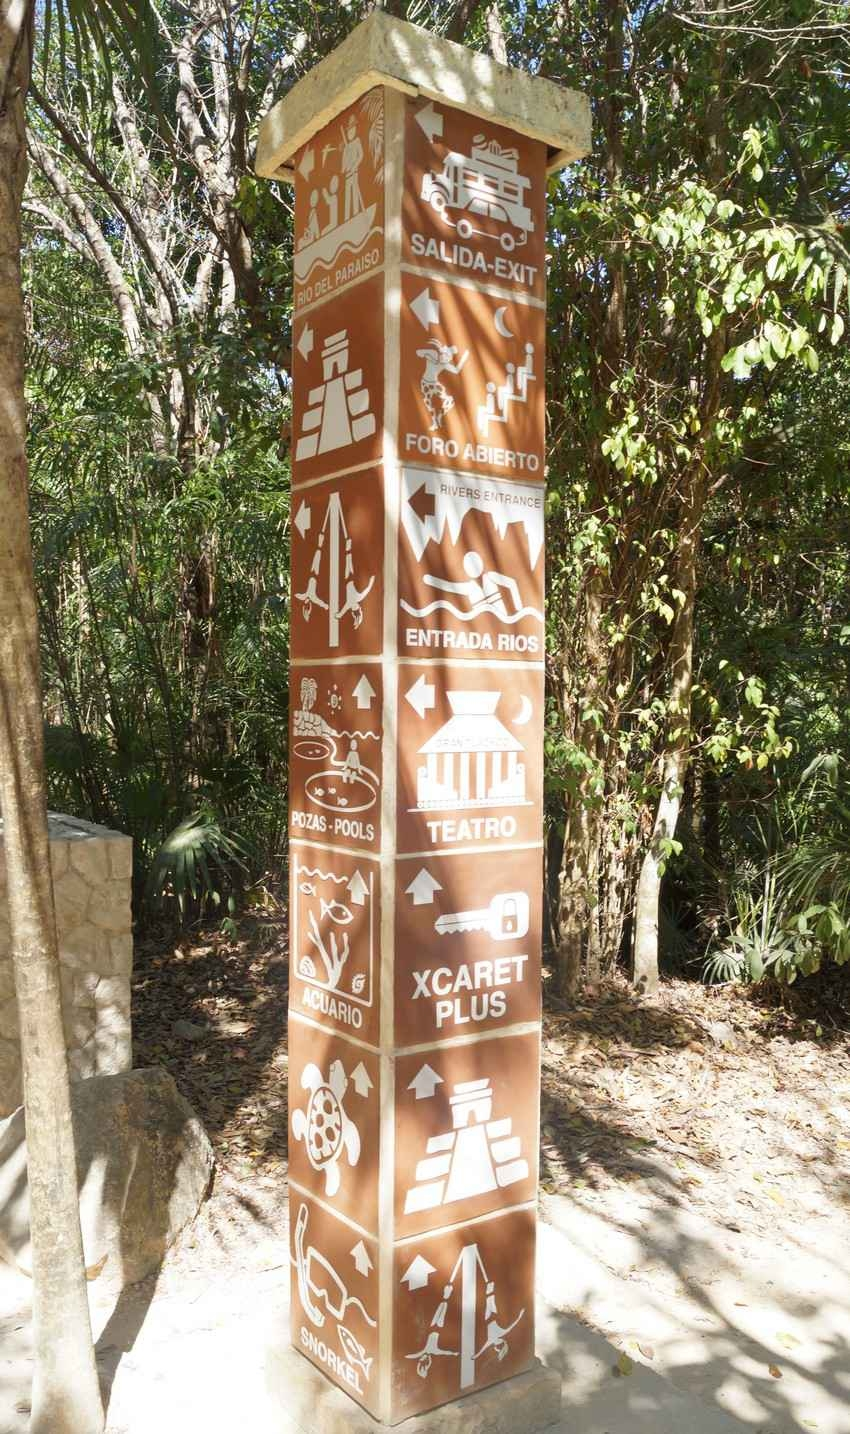 A large sign post in the Xcaret Park.